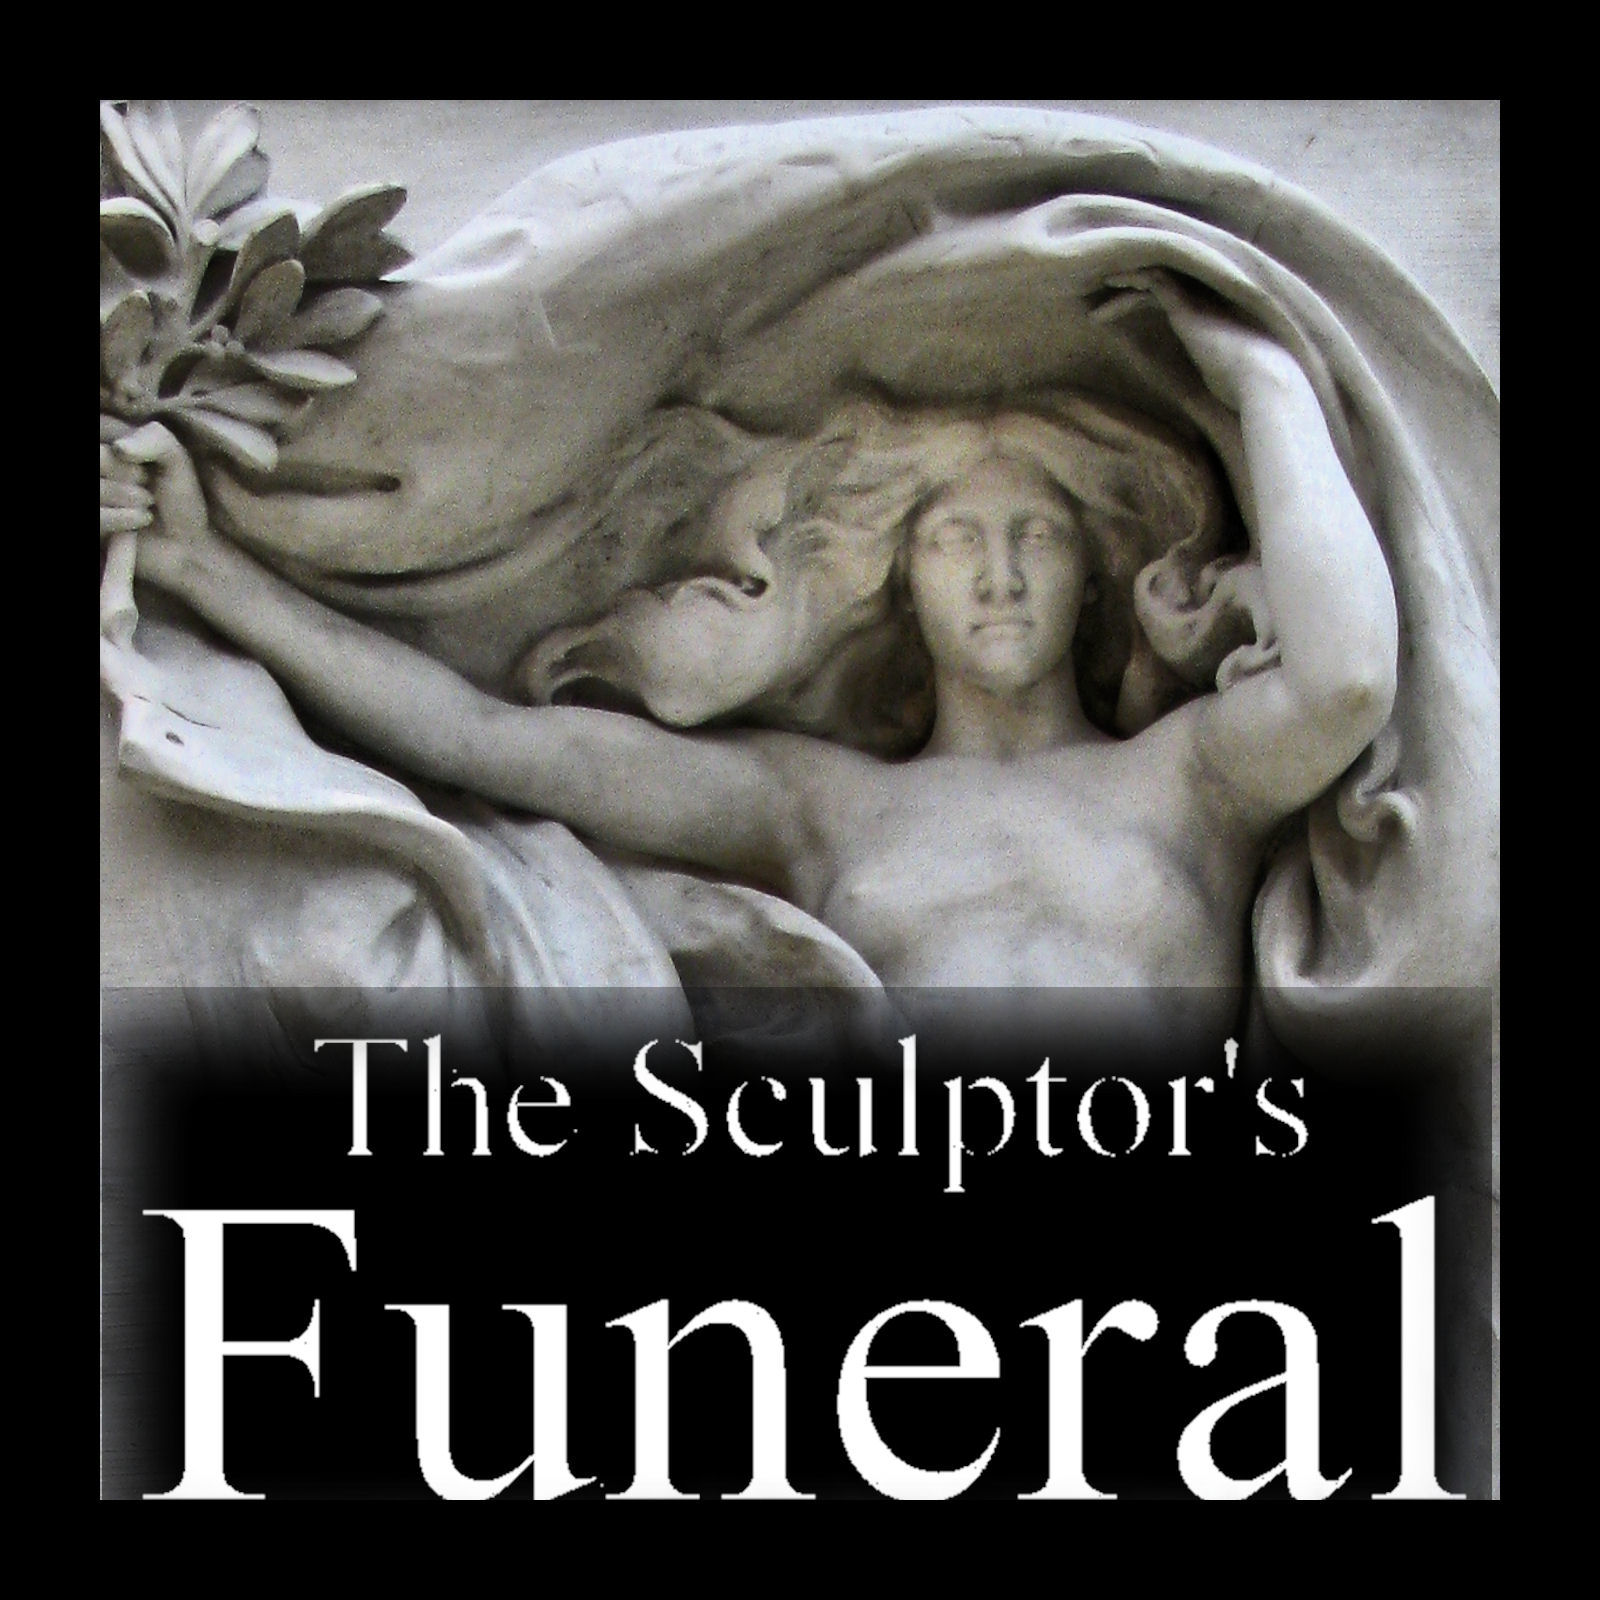 The Sculptor's Funeral